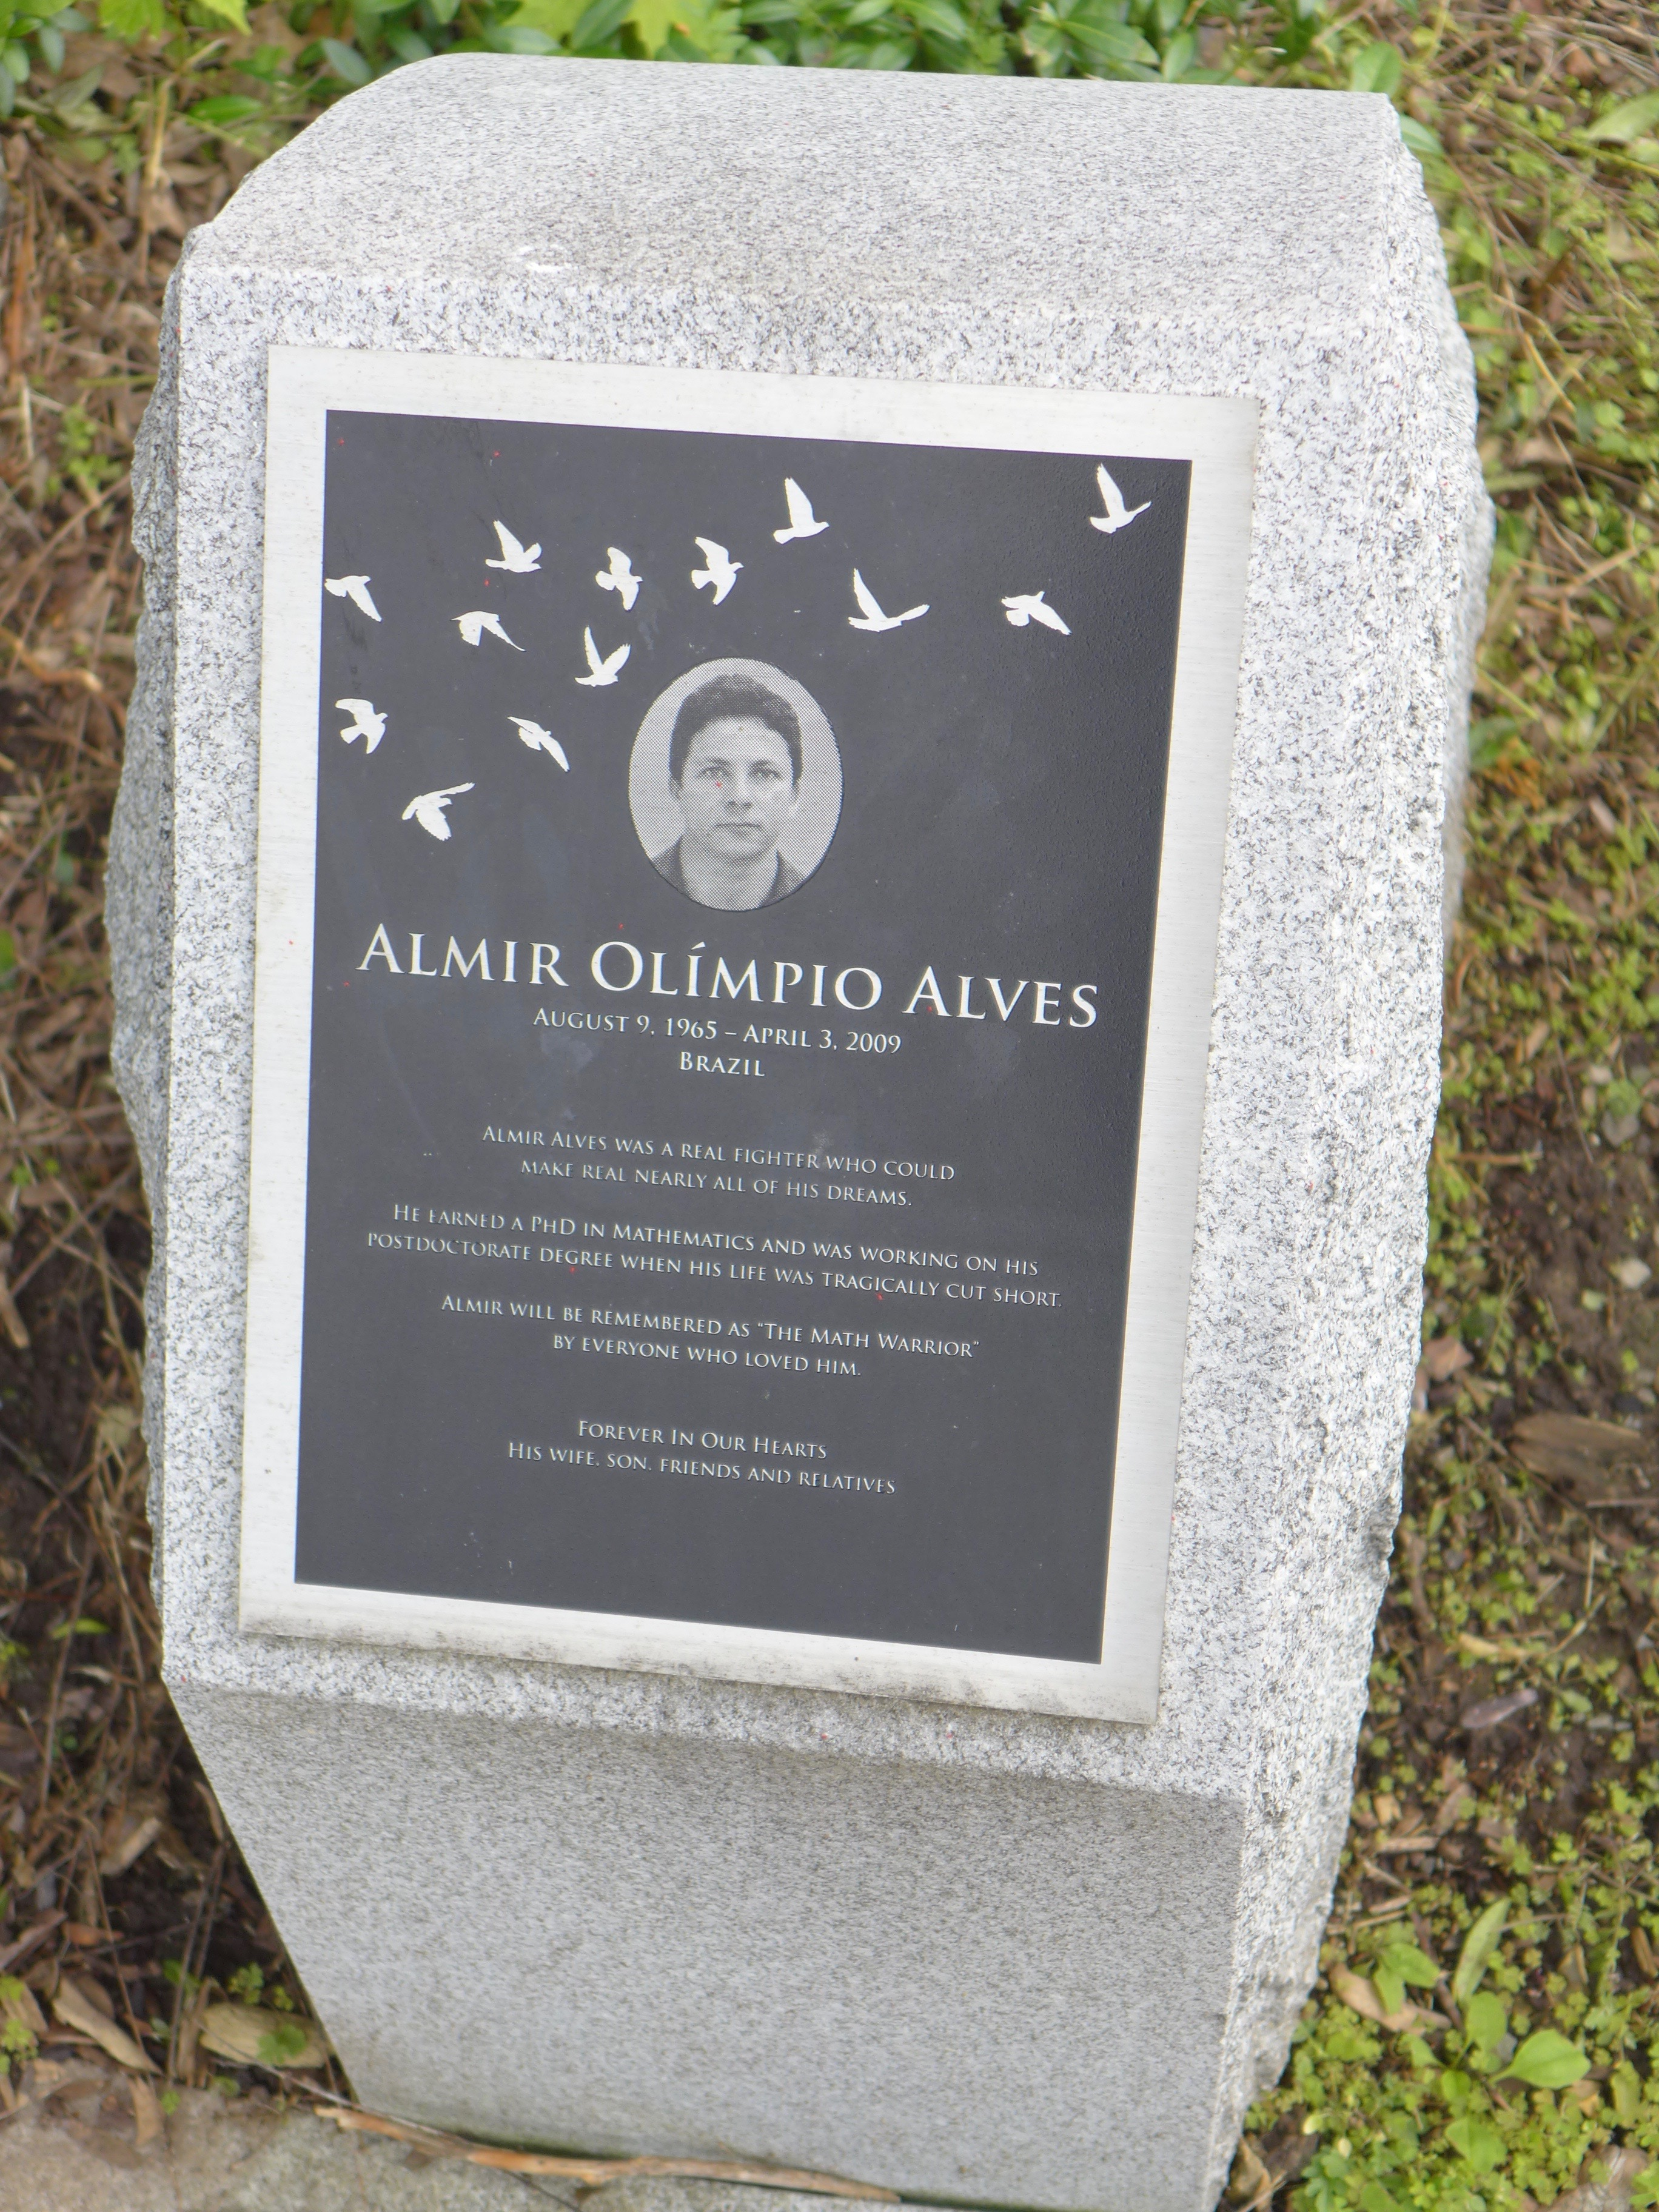 Memorial stone, Almir Olimio Alves